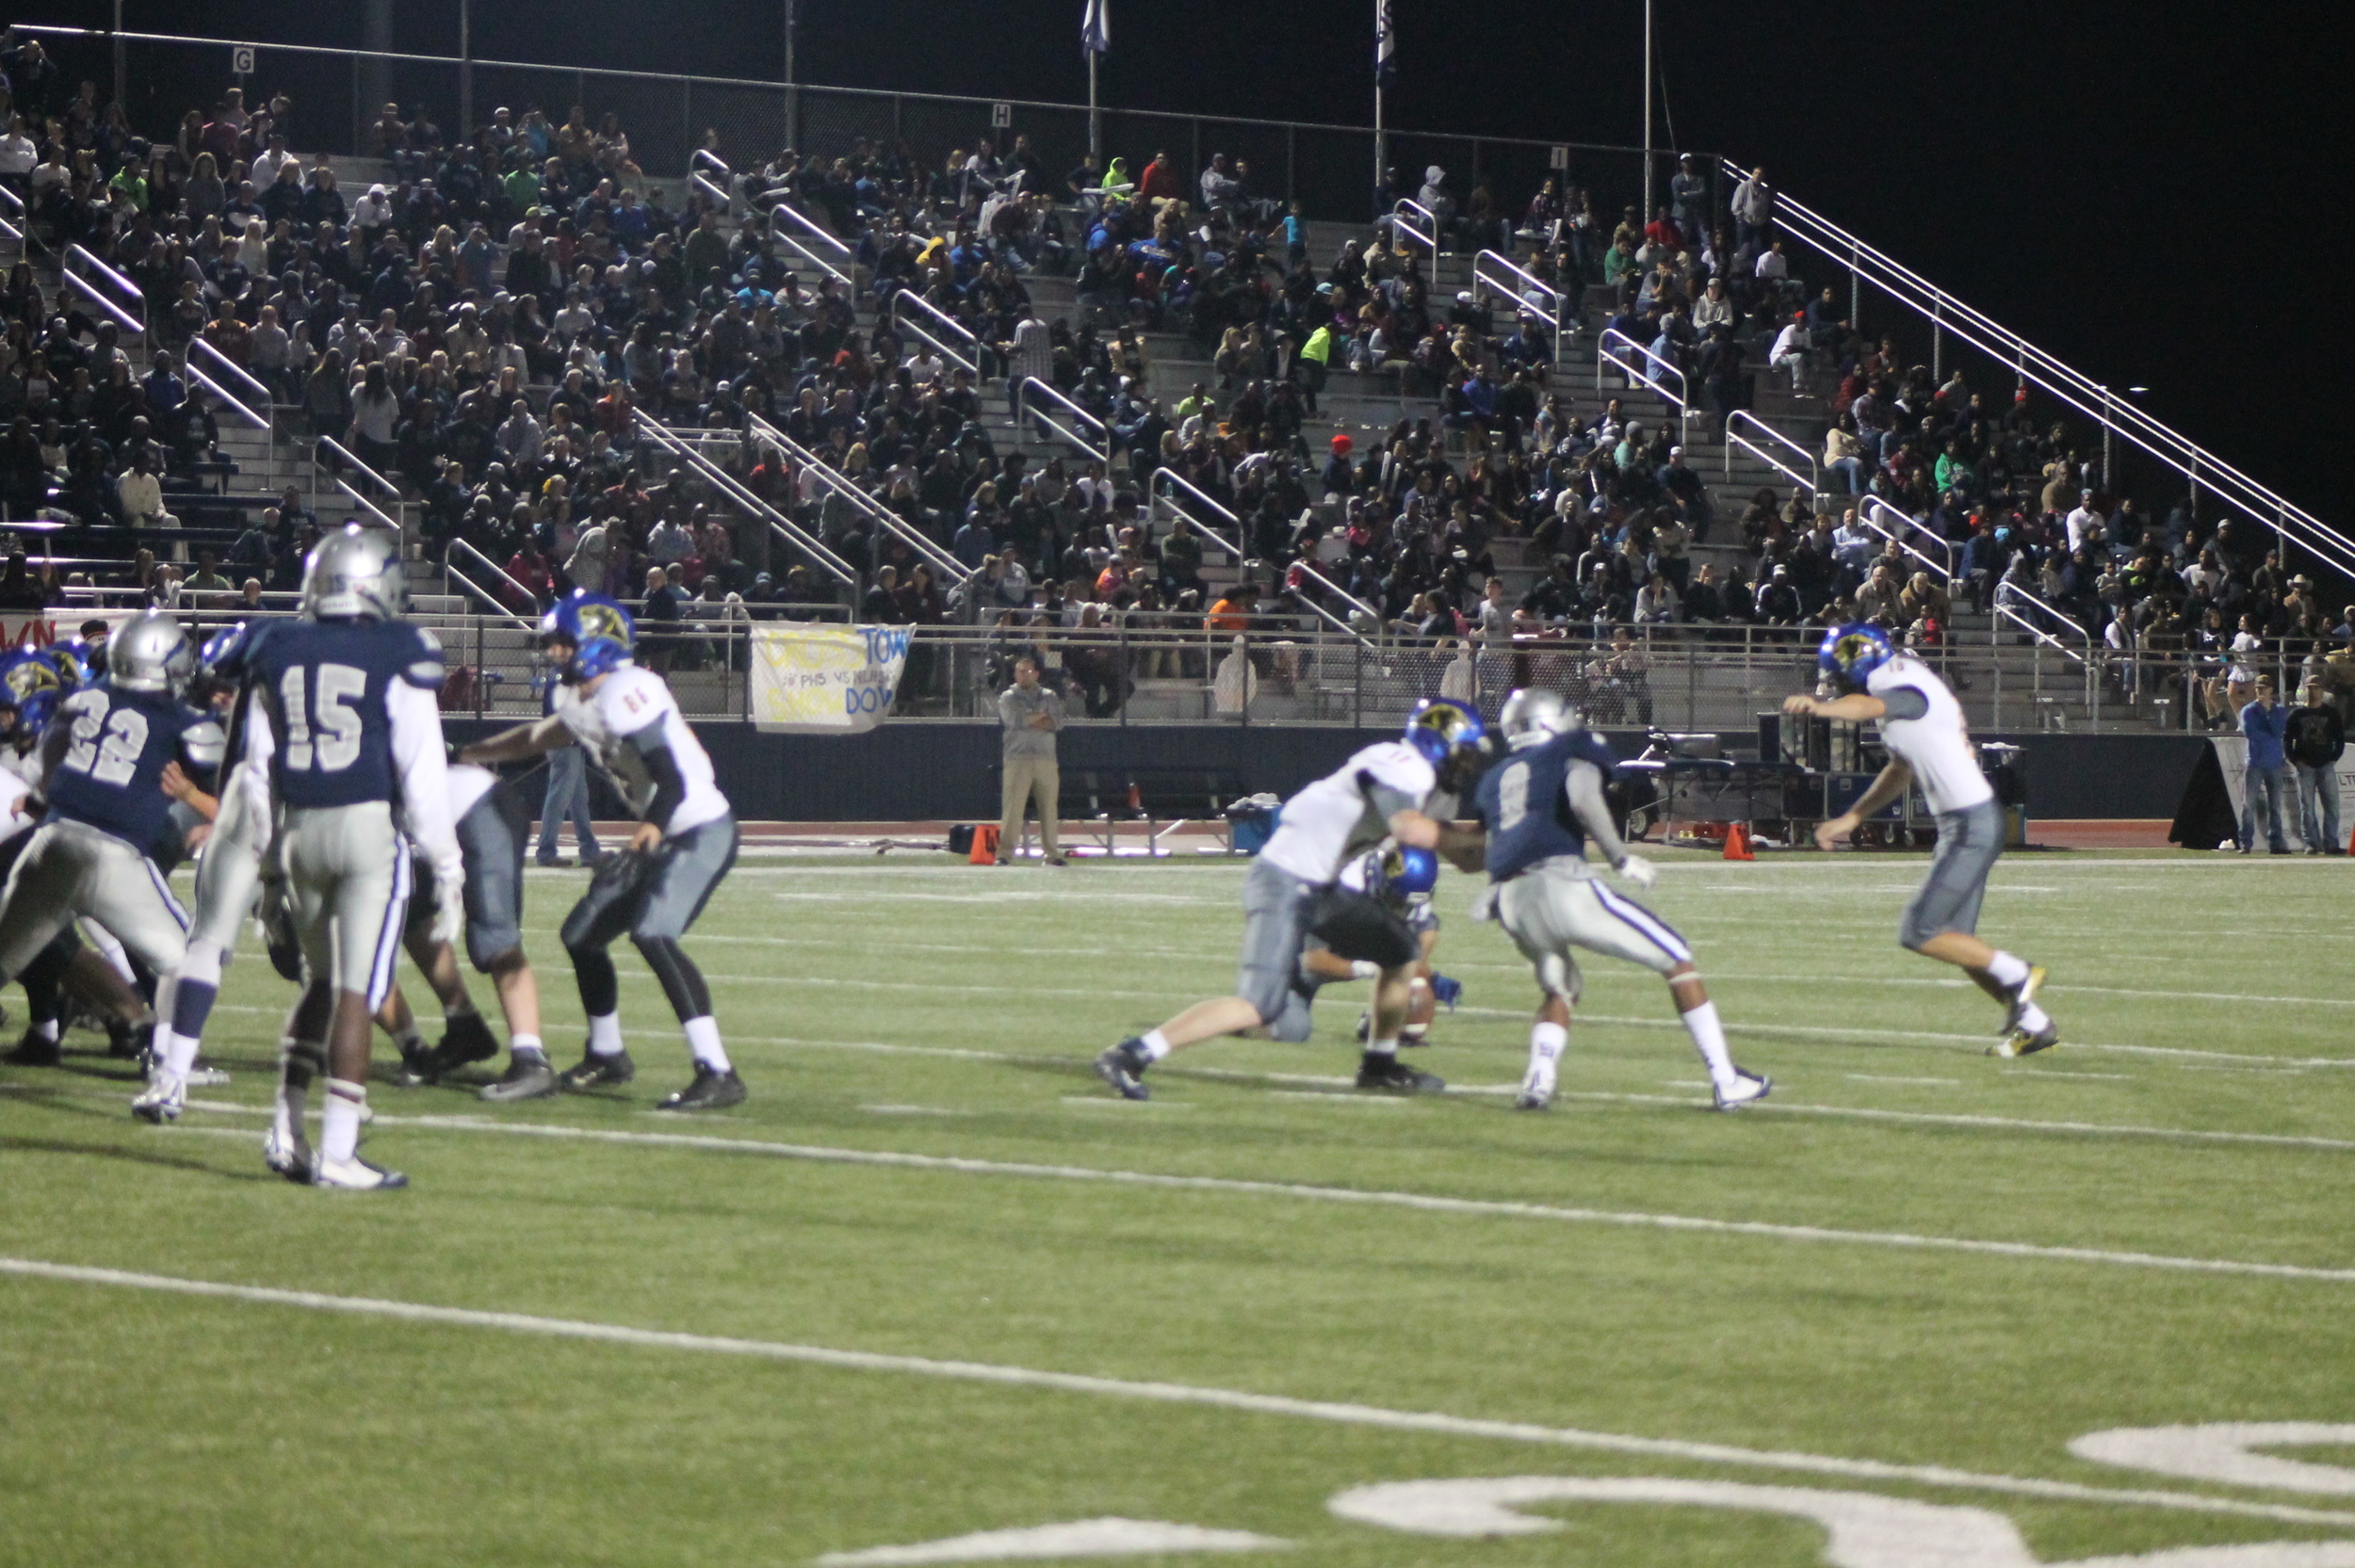 (Photo by Maddy Routon) Nick West with a 42 yard field goal for North Lamar